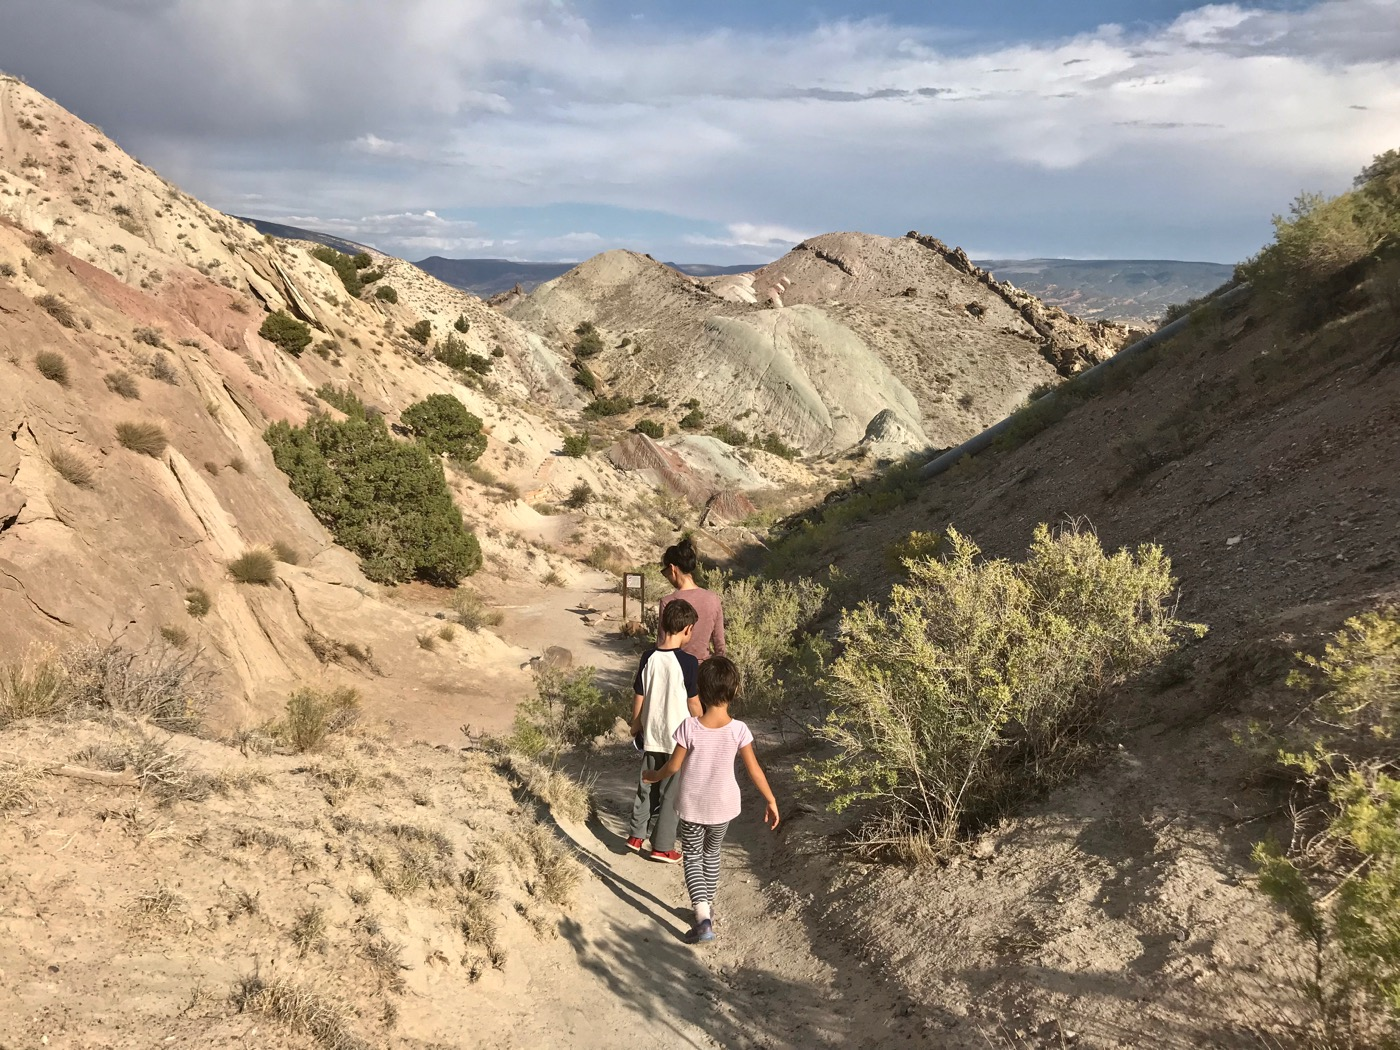 Searching for fossils at Dinosaur National Monument